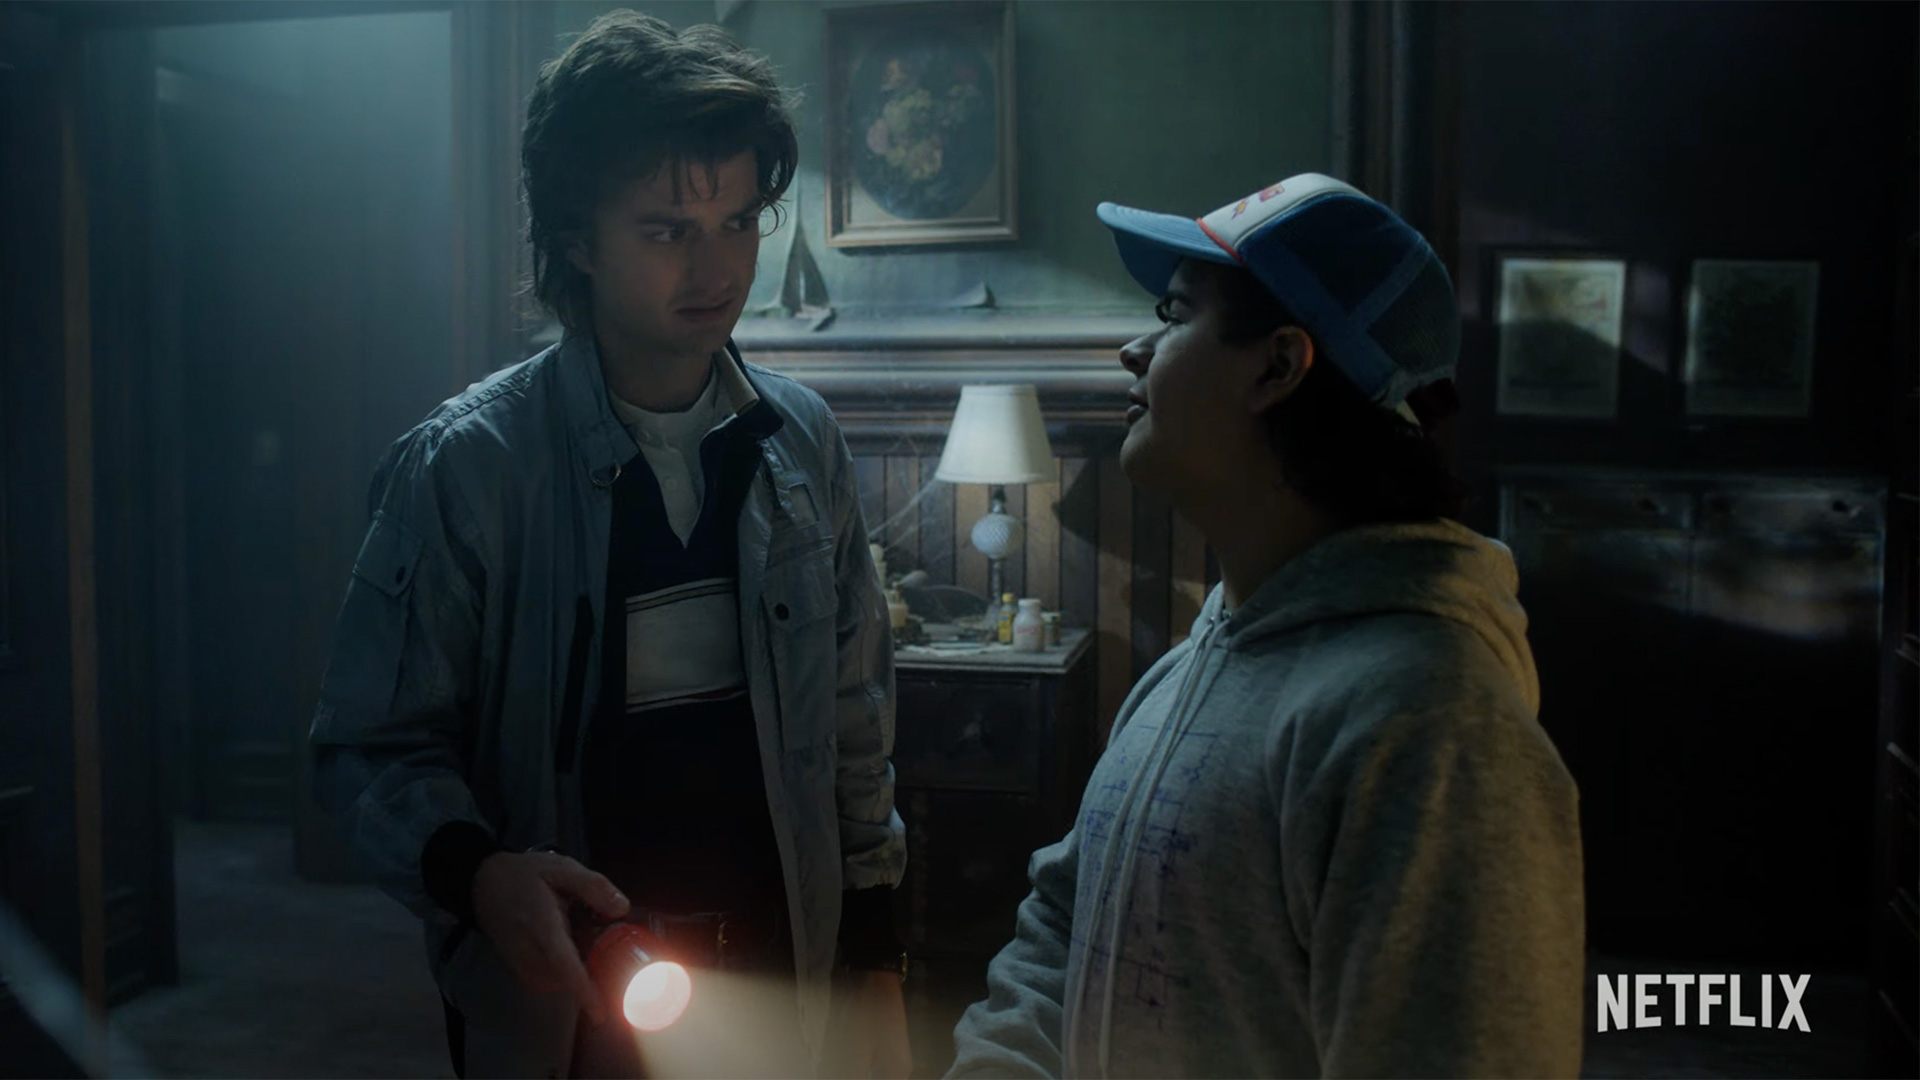 'Stranger Things' season 4 teaser offers a peek at a haunted house